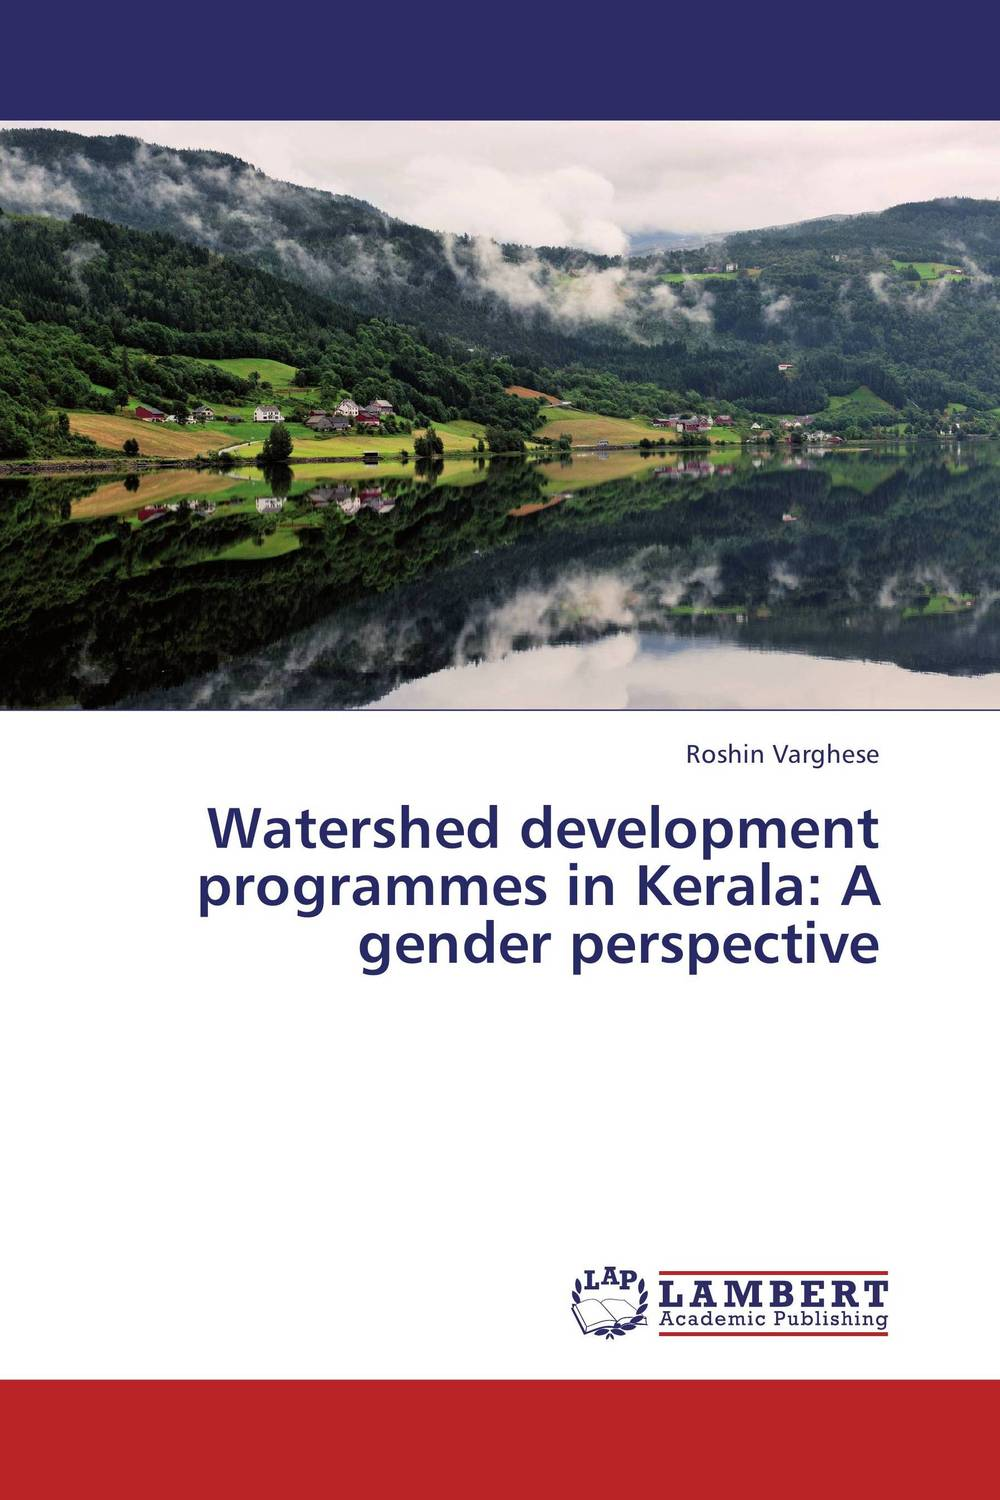 купить Watershed development programmes in Kerala: A gender perspective недорого